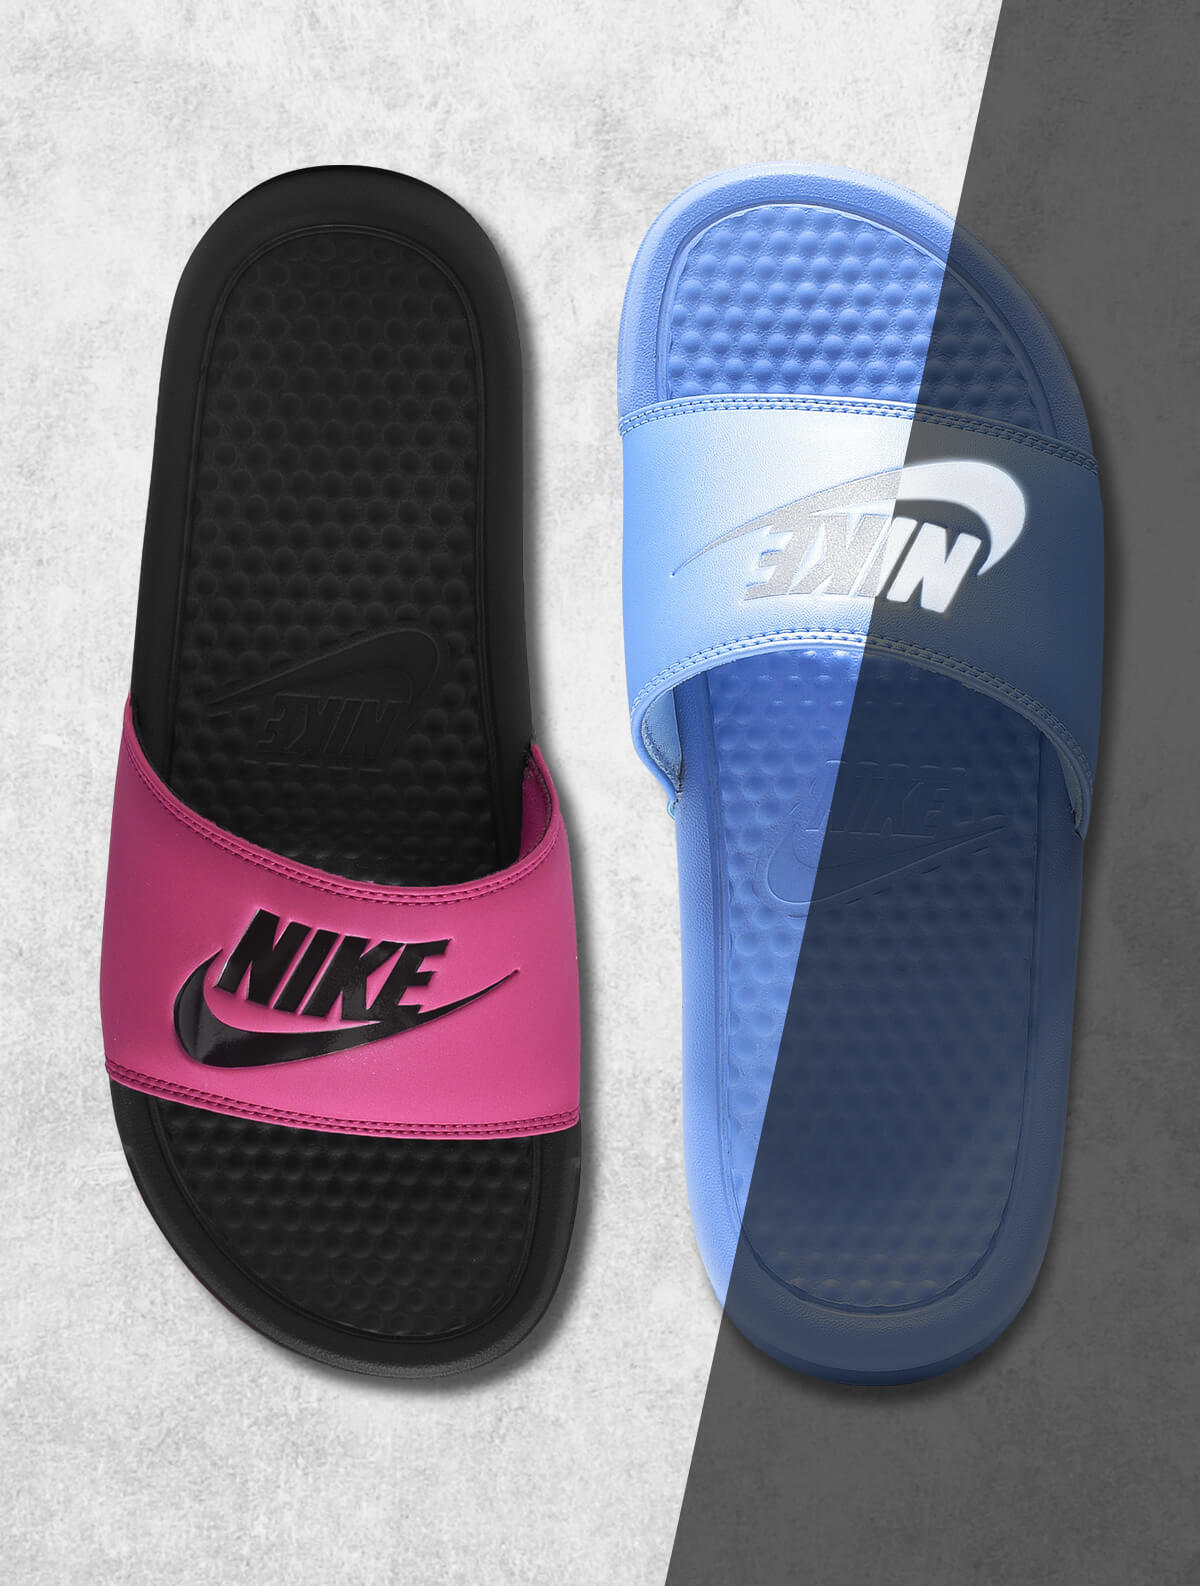 MEN'S NEW ARRIVAL SLIDES FROM NIKE SB & MORE - SHOP SLIDES & SANDALS